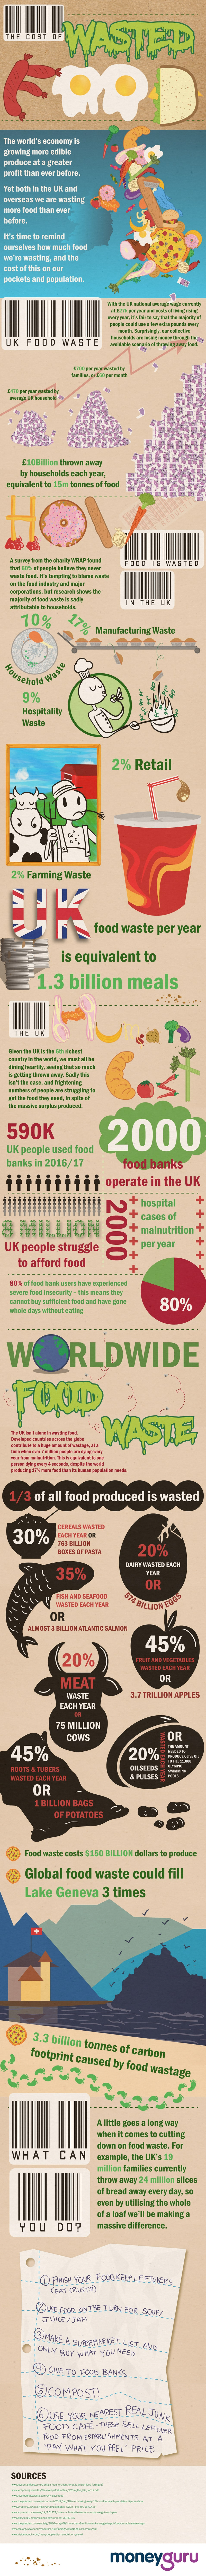 The Cost of Wasted Food infographic